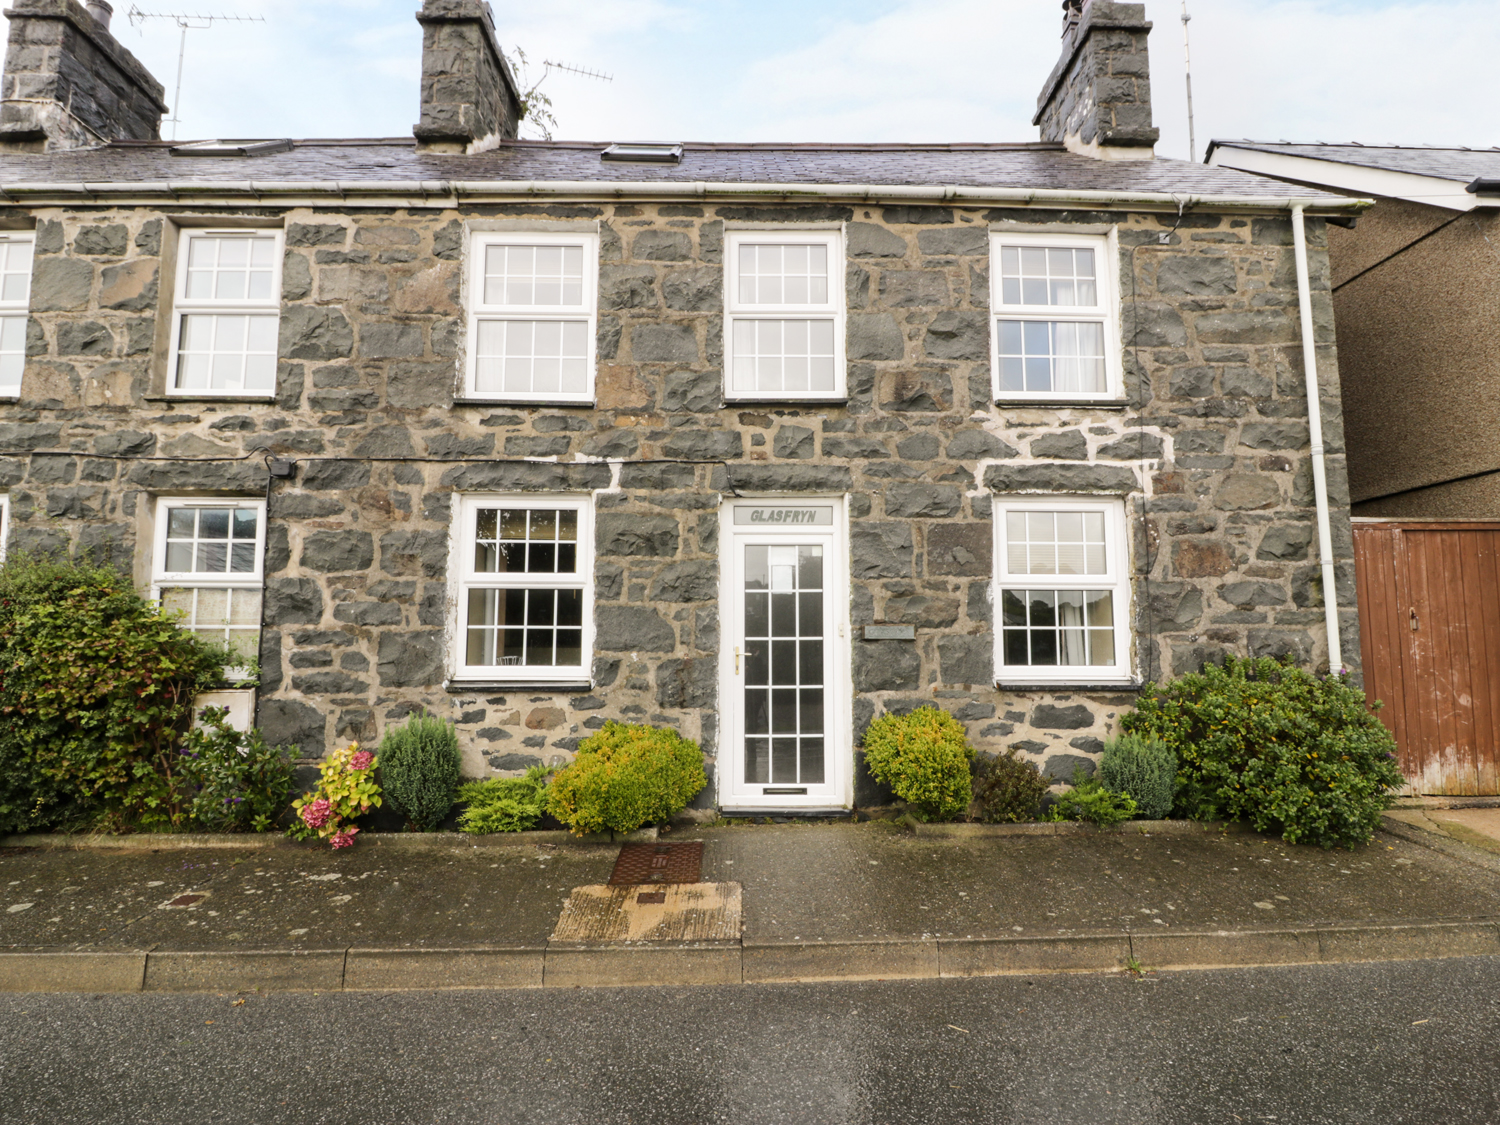 3 bedroom Cottage for rent in Pwllheli